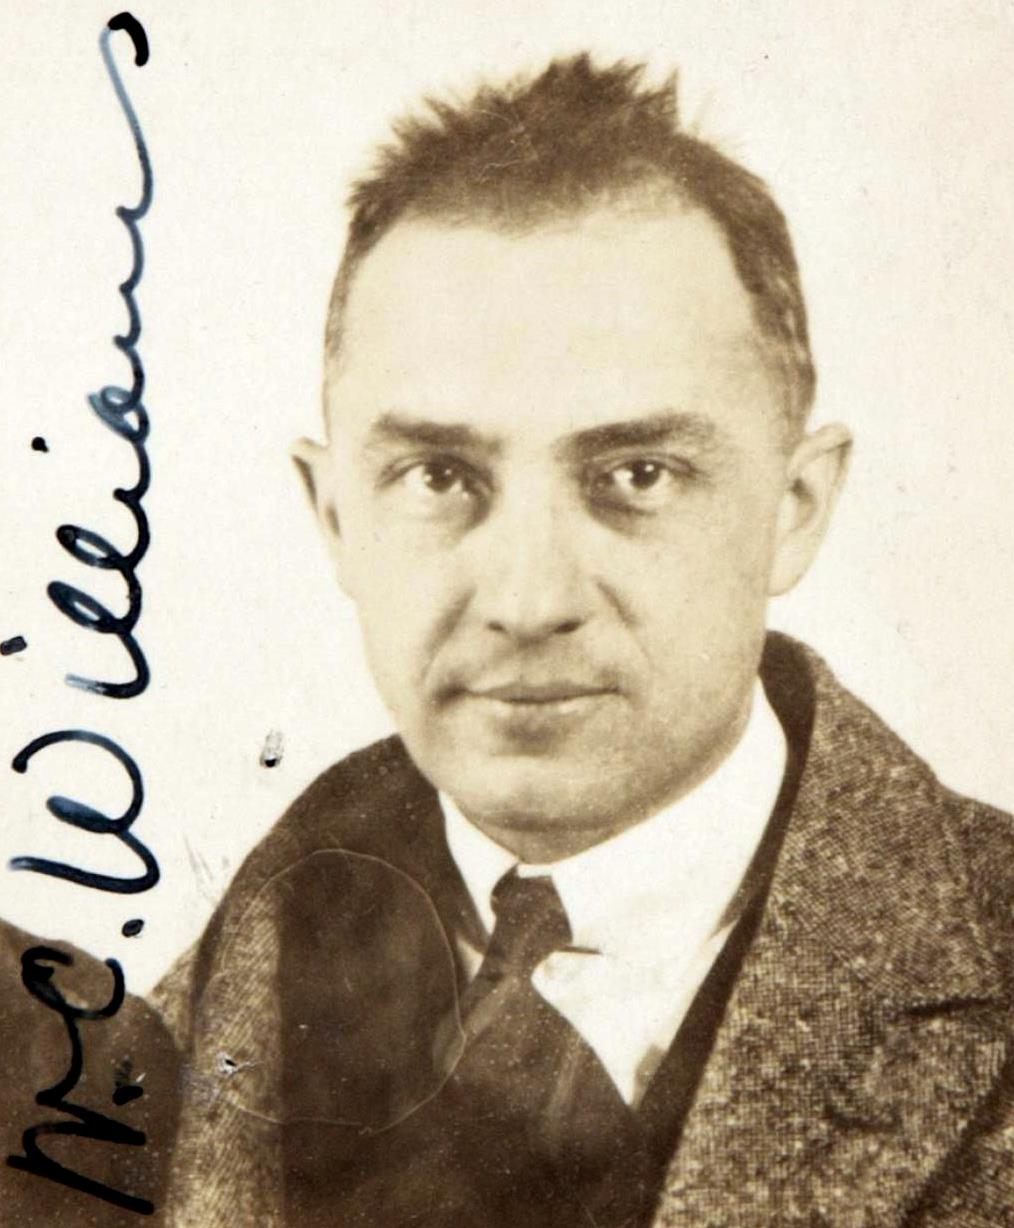 William Carlos Williams passport photograph,1921